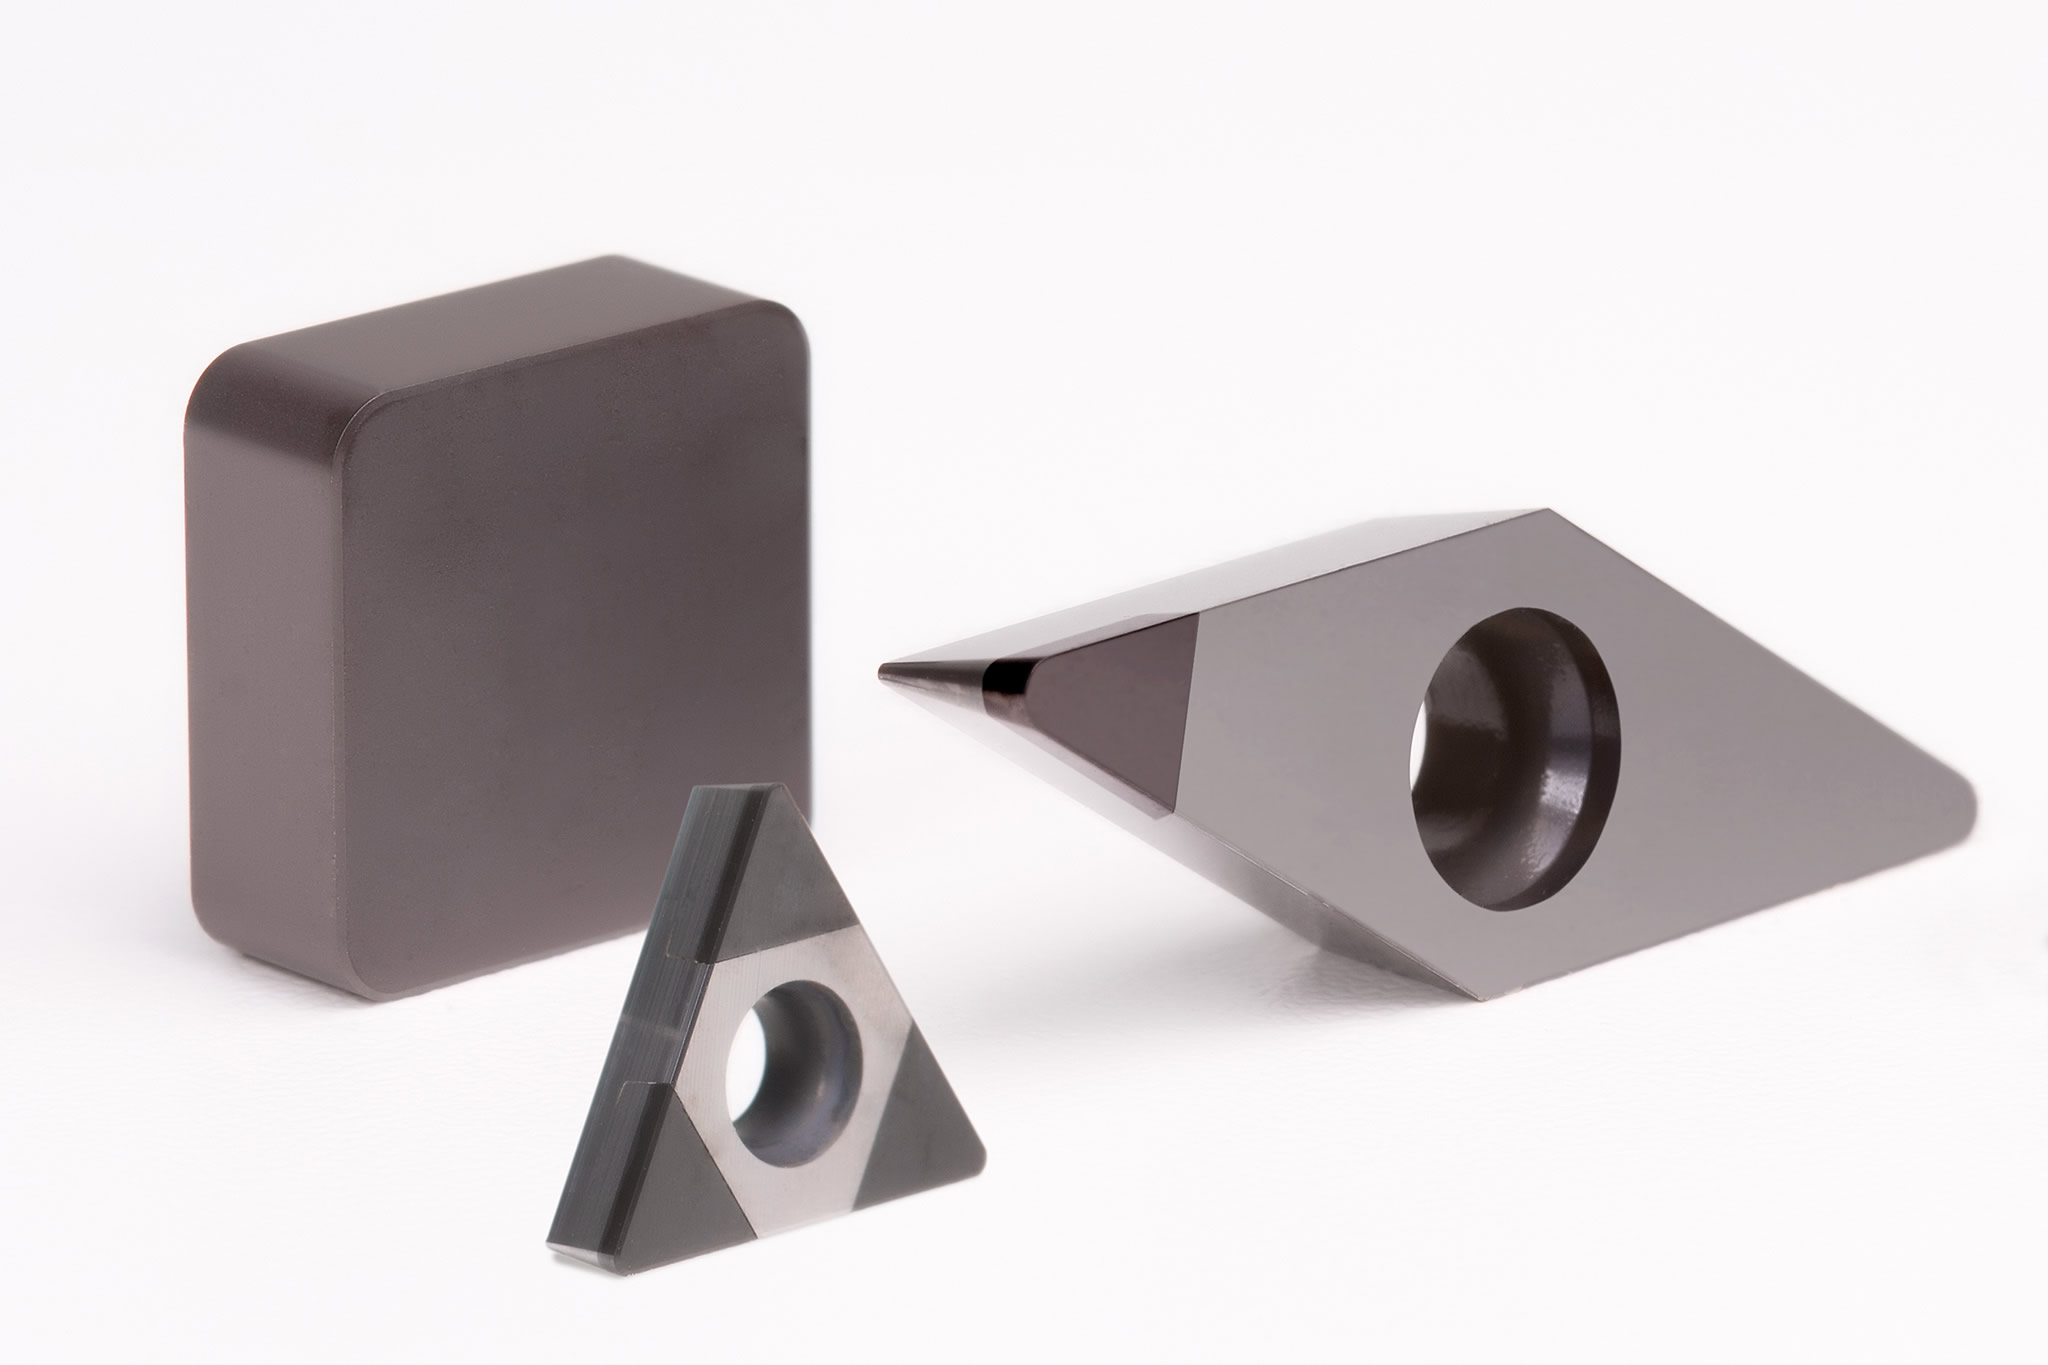 A selection of PcBN-tipped indexable inserts from MAPAL.